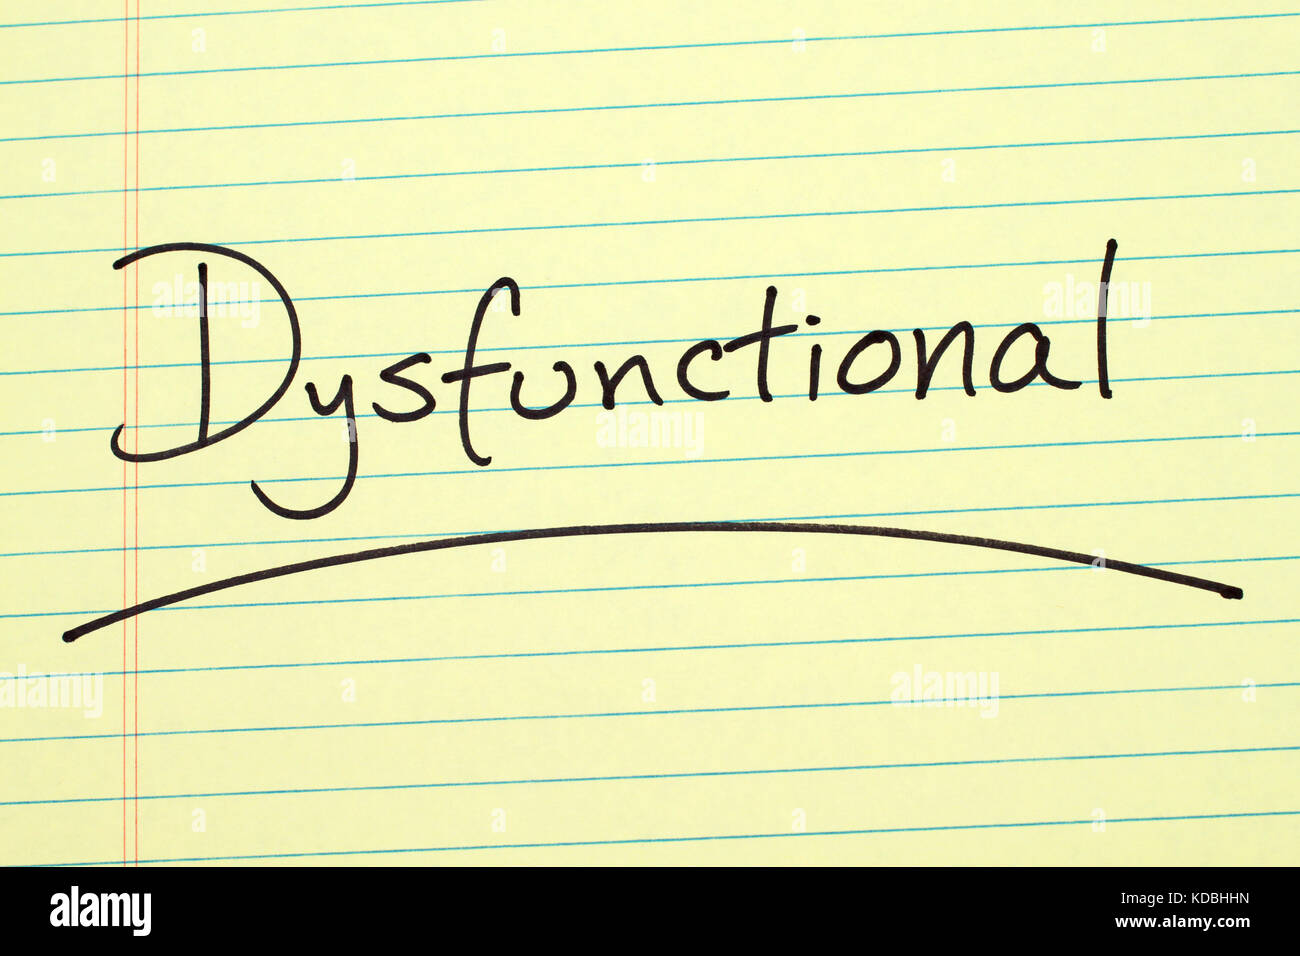 The word 'Dysfunctional' underlined on a yellow legal pad - Stock Image